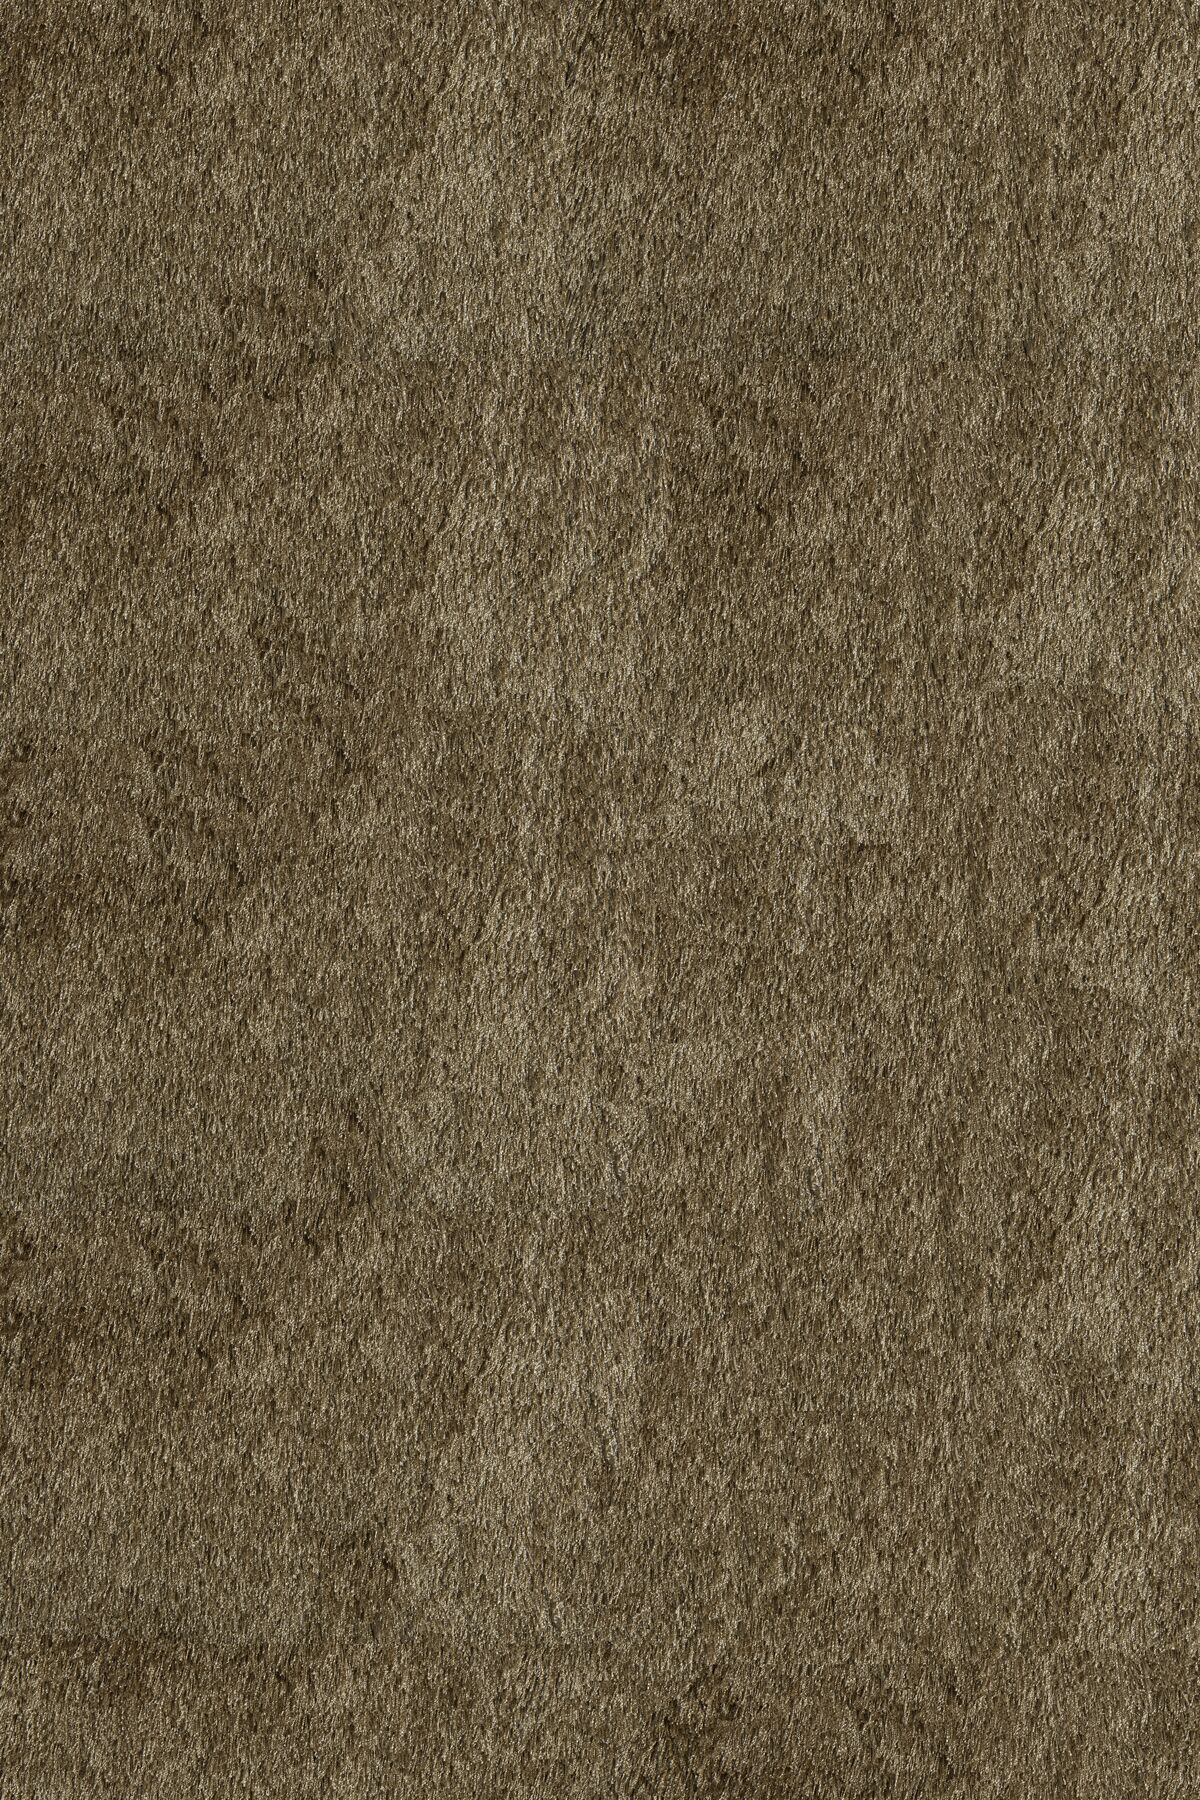 Ciera Hand-Tufted Light Taupe Area Rug Rug Size: Round 4'